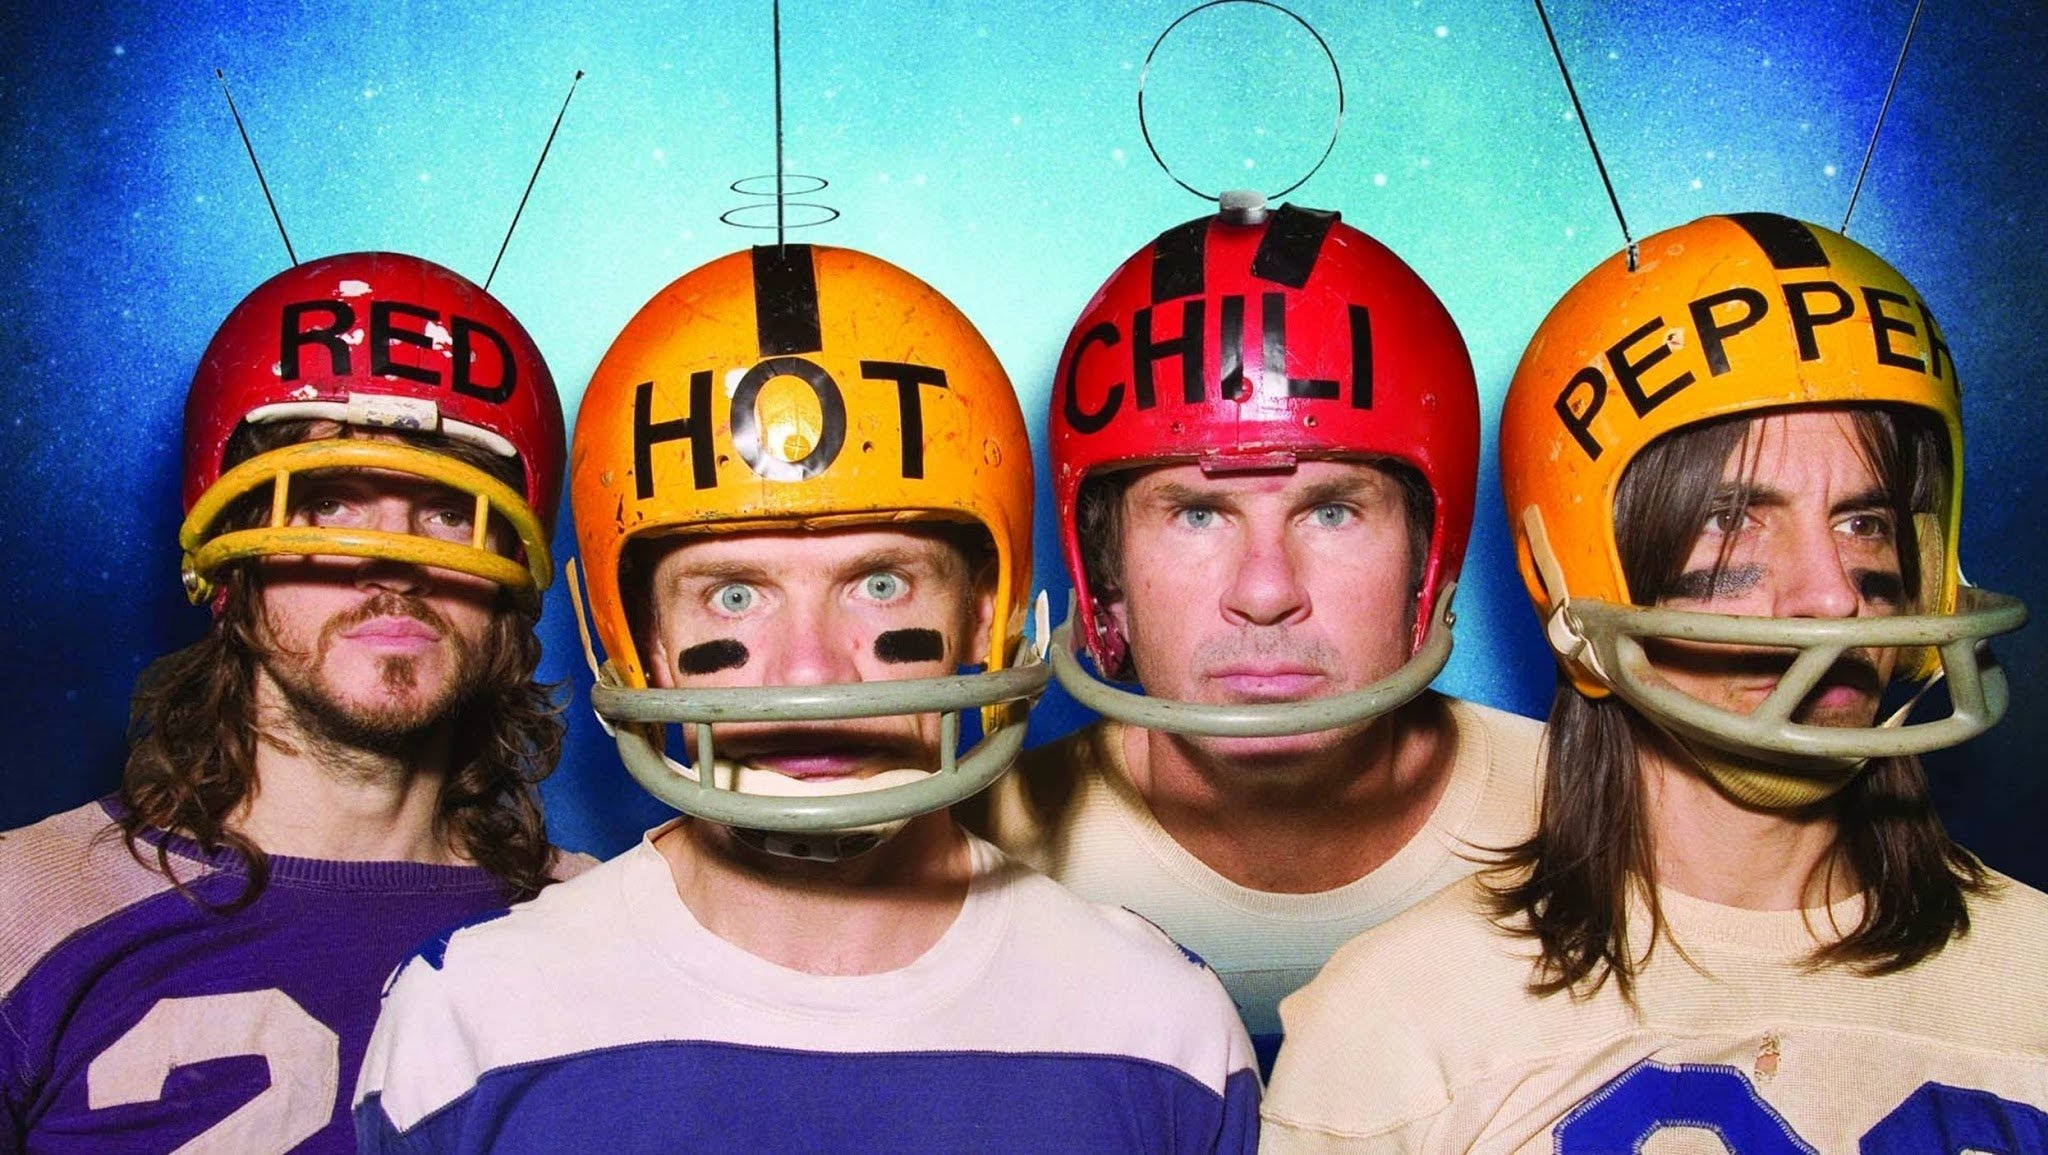 музыка для секса red hot chili peppers